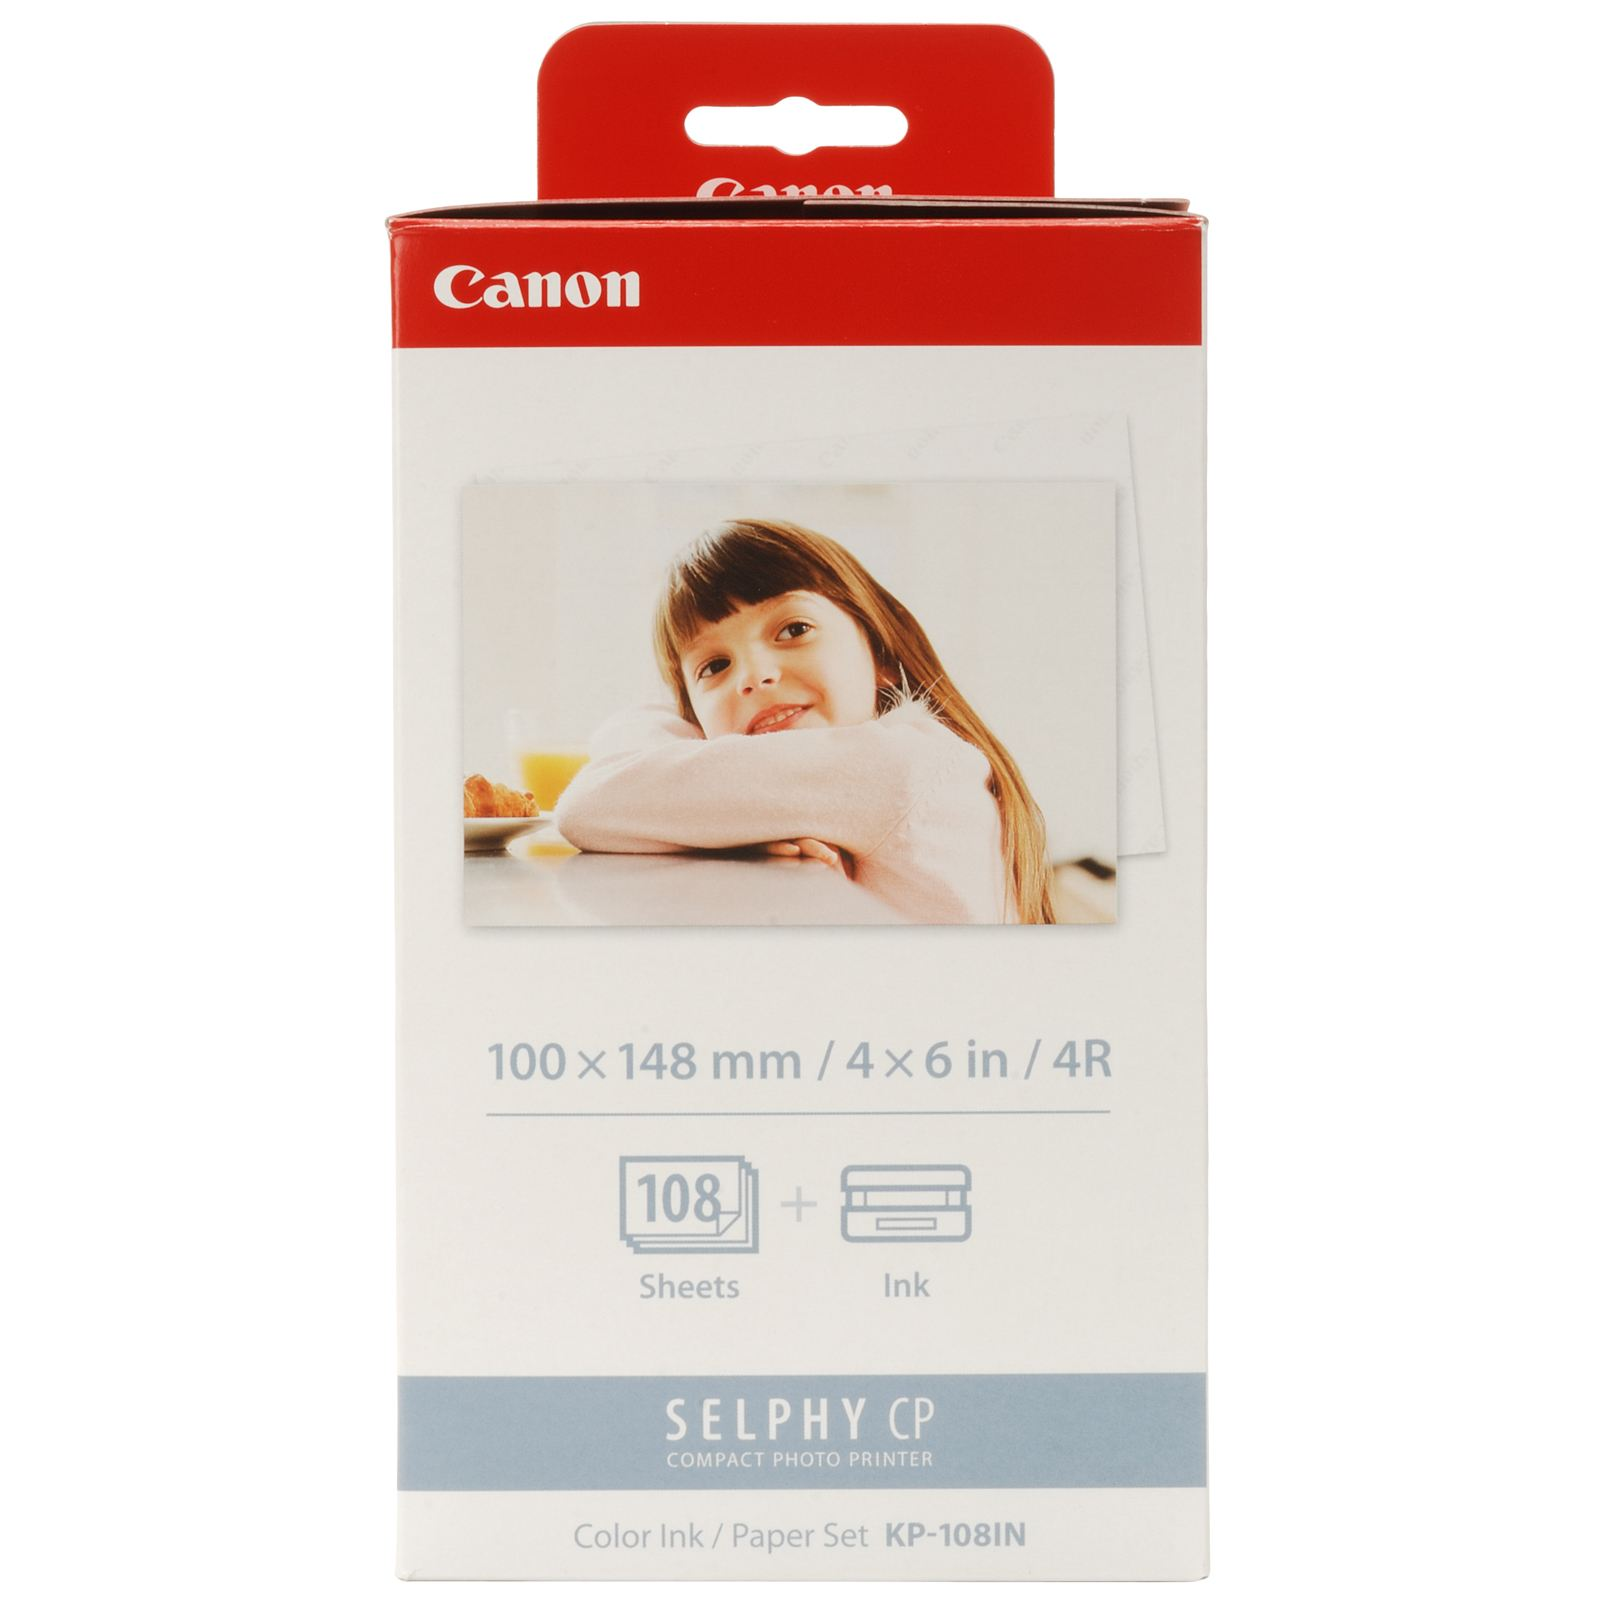 Cheap Canon KP-108IN Ink Casette Multipack & Photo Paper | Canon | 3115B001AA | Canon